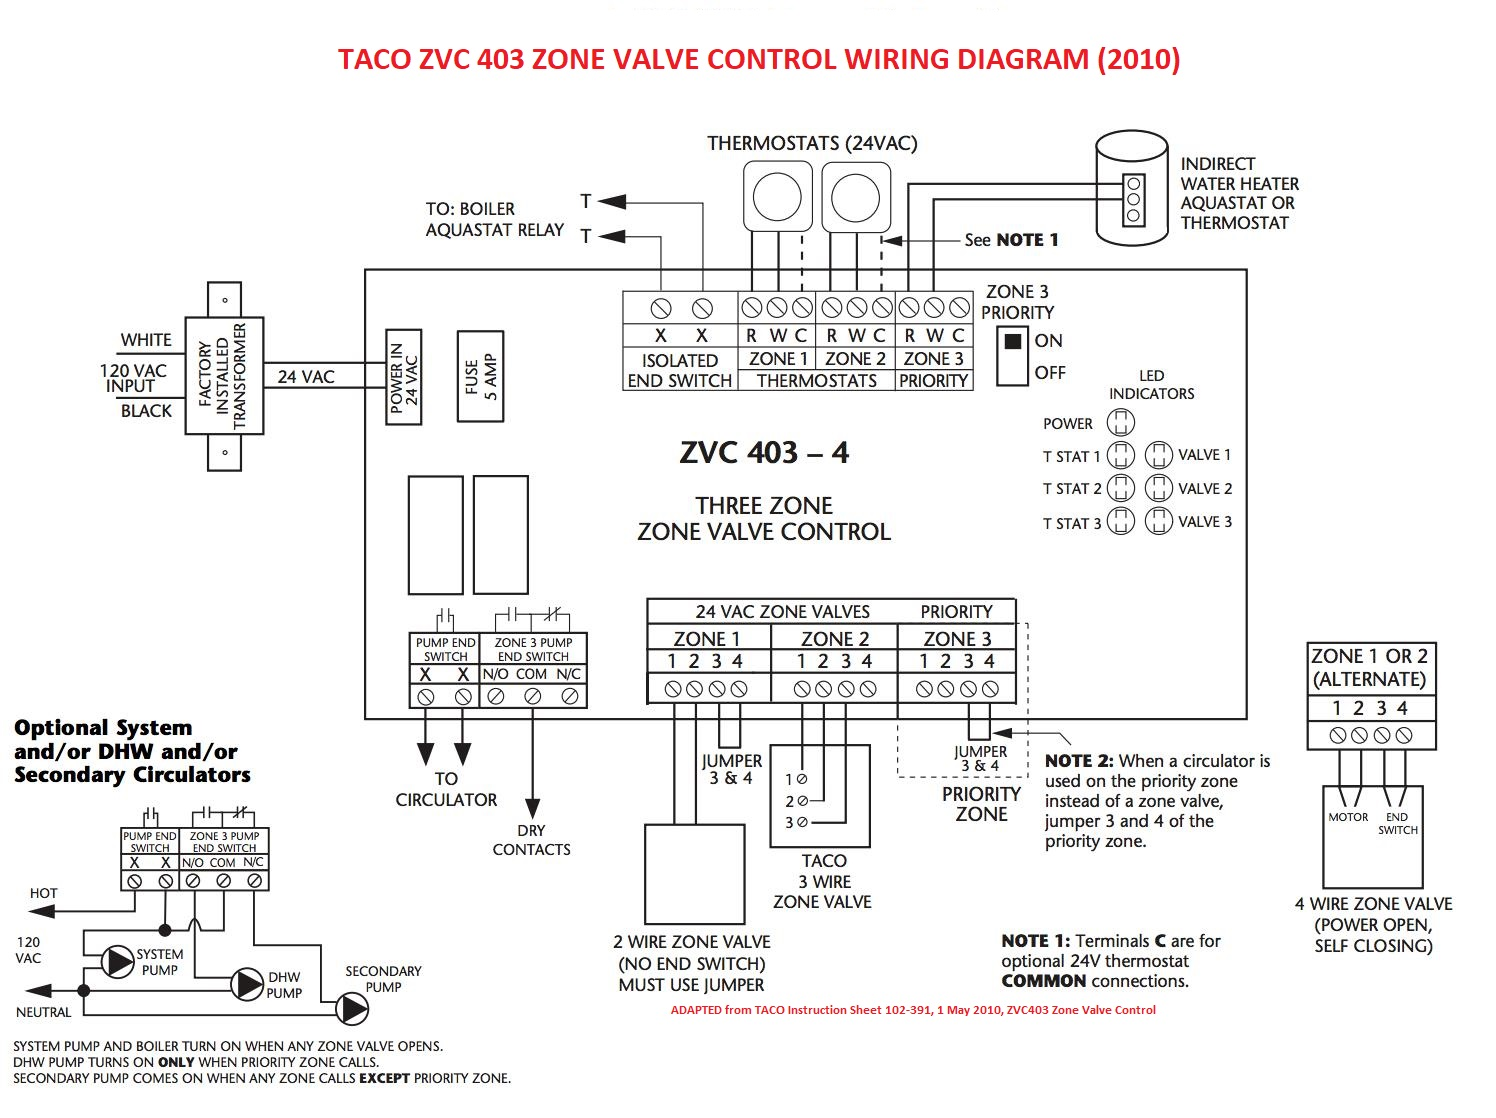 Typical Unit Heater Wiring Diagram Detailed Schematics Data Zone Valve Installation Instructions Guide To Heating Control Relay